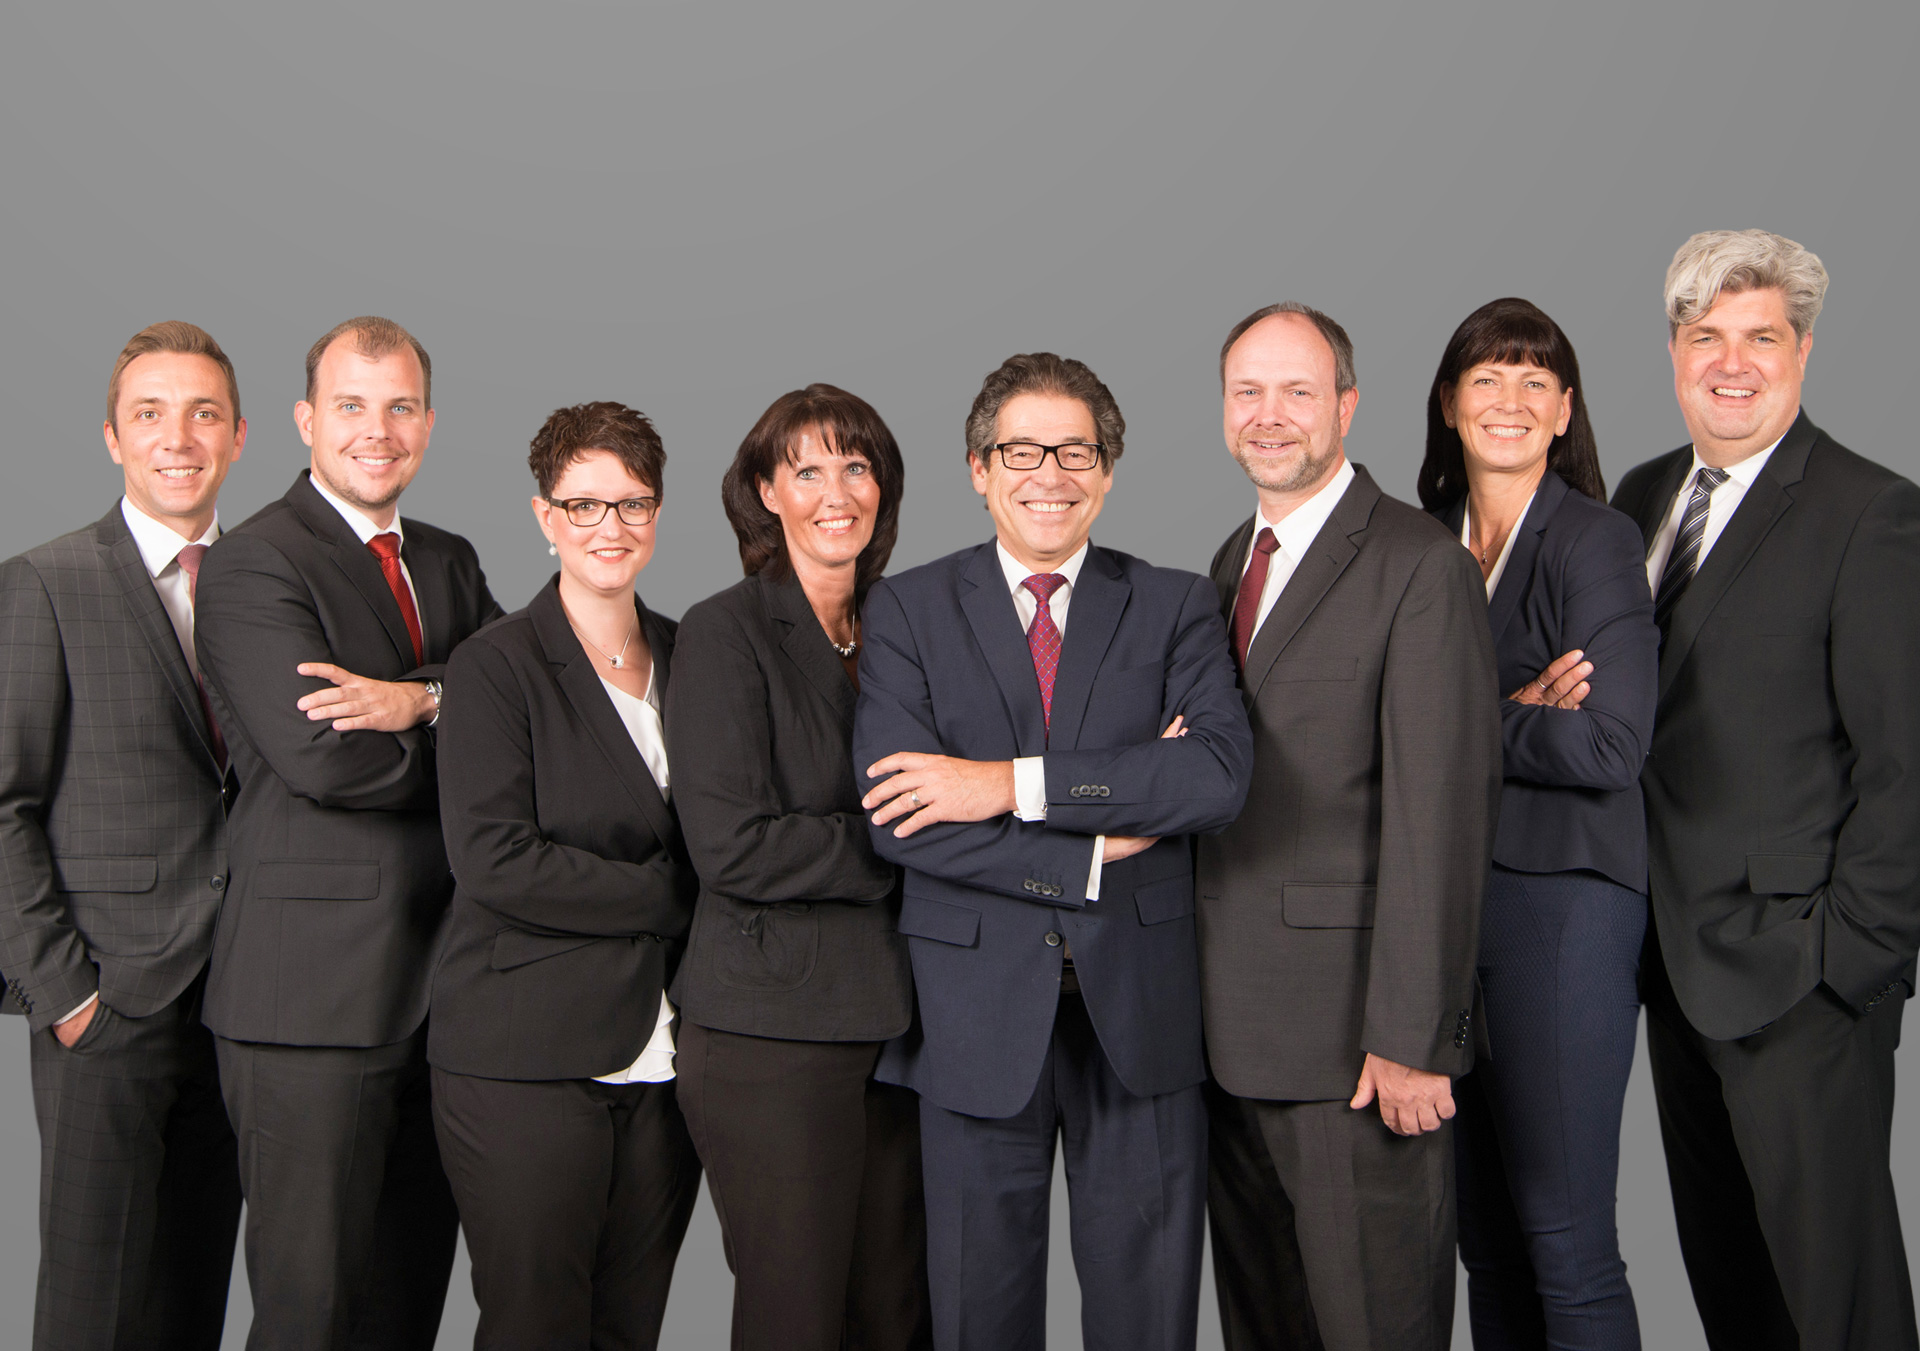 s-immobiliencenter-anzeige-team-komposition-final-b